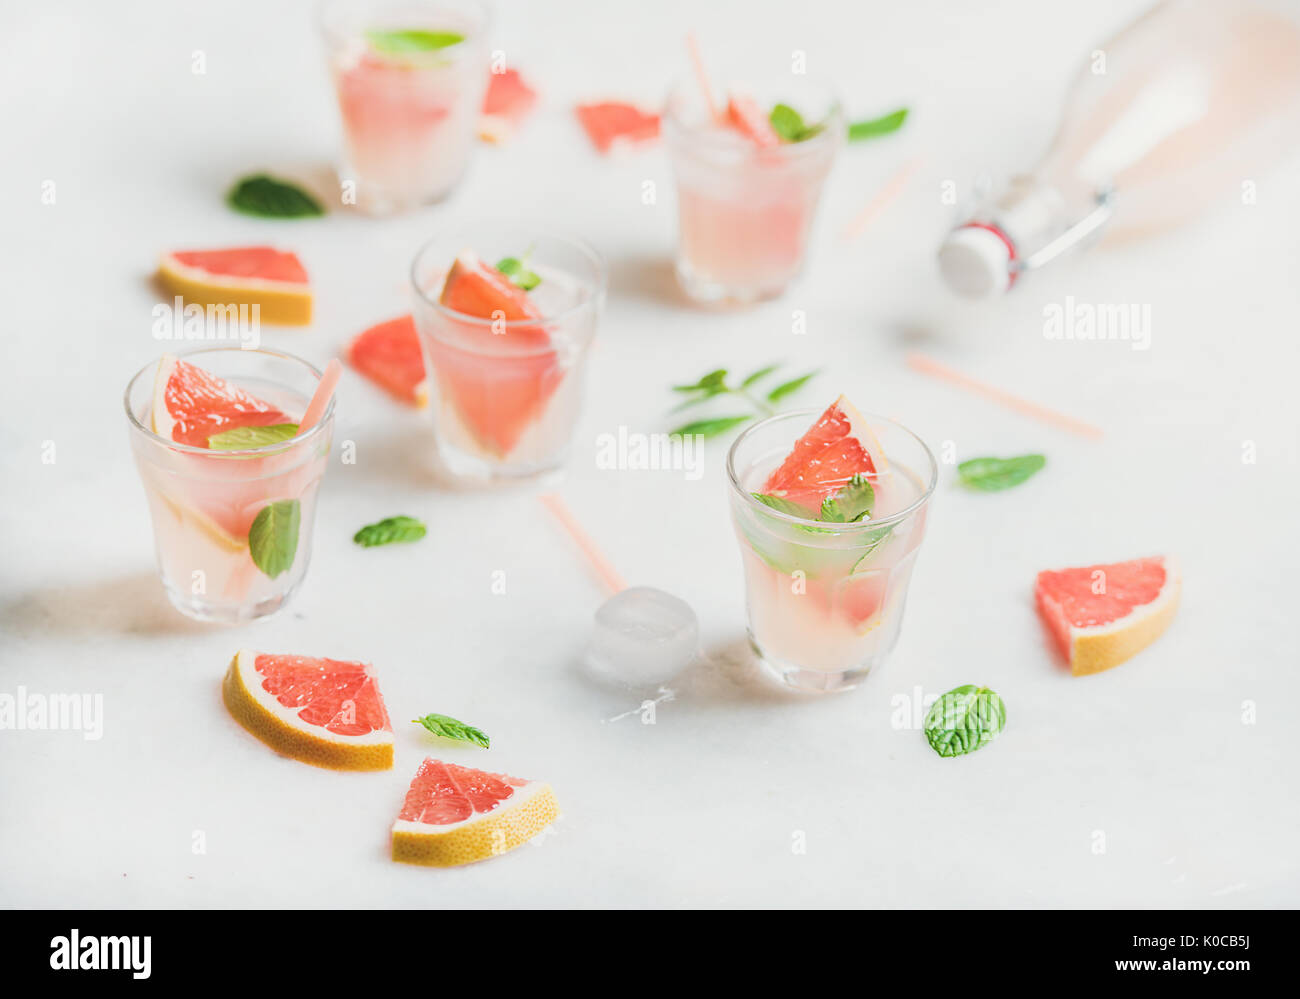 Cold refreshing summer alcohol cocktail with fresh grapefruit pieces - Stock Image